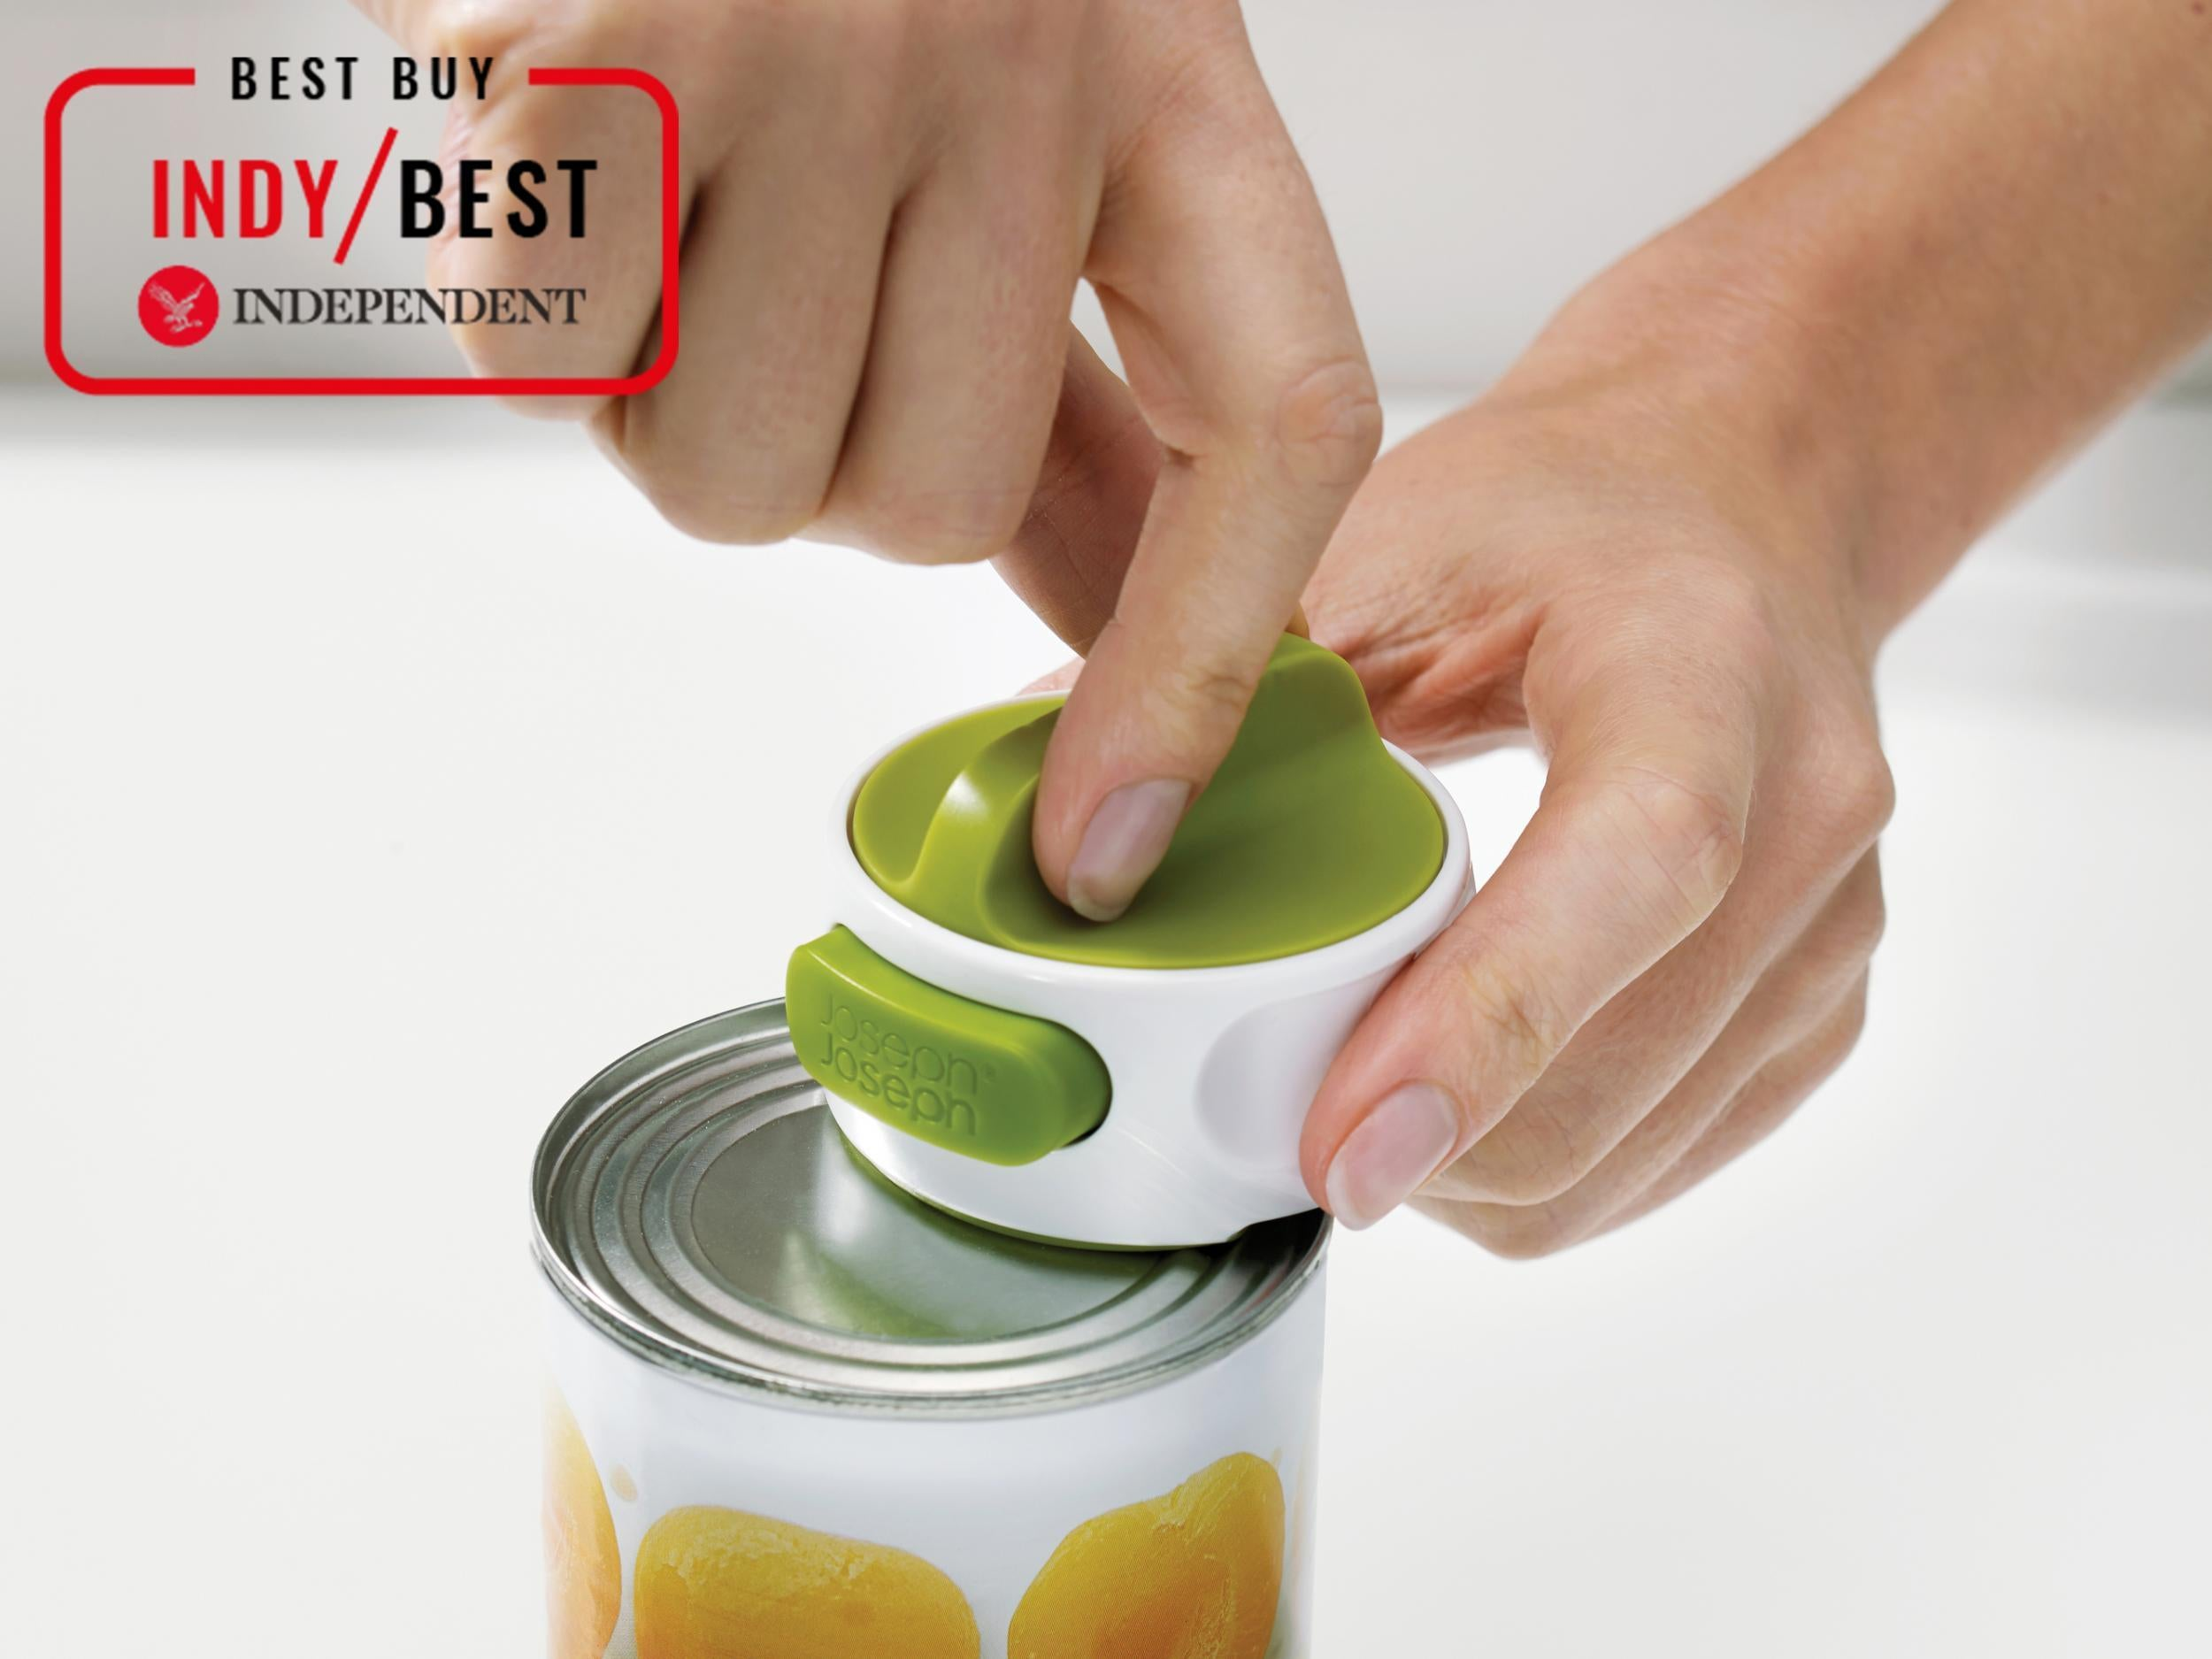 9 best can openers | The Independent